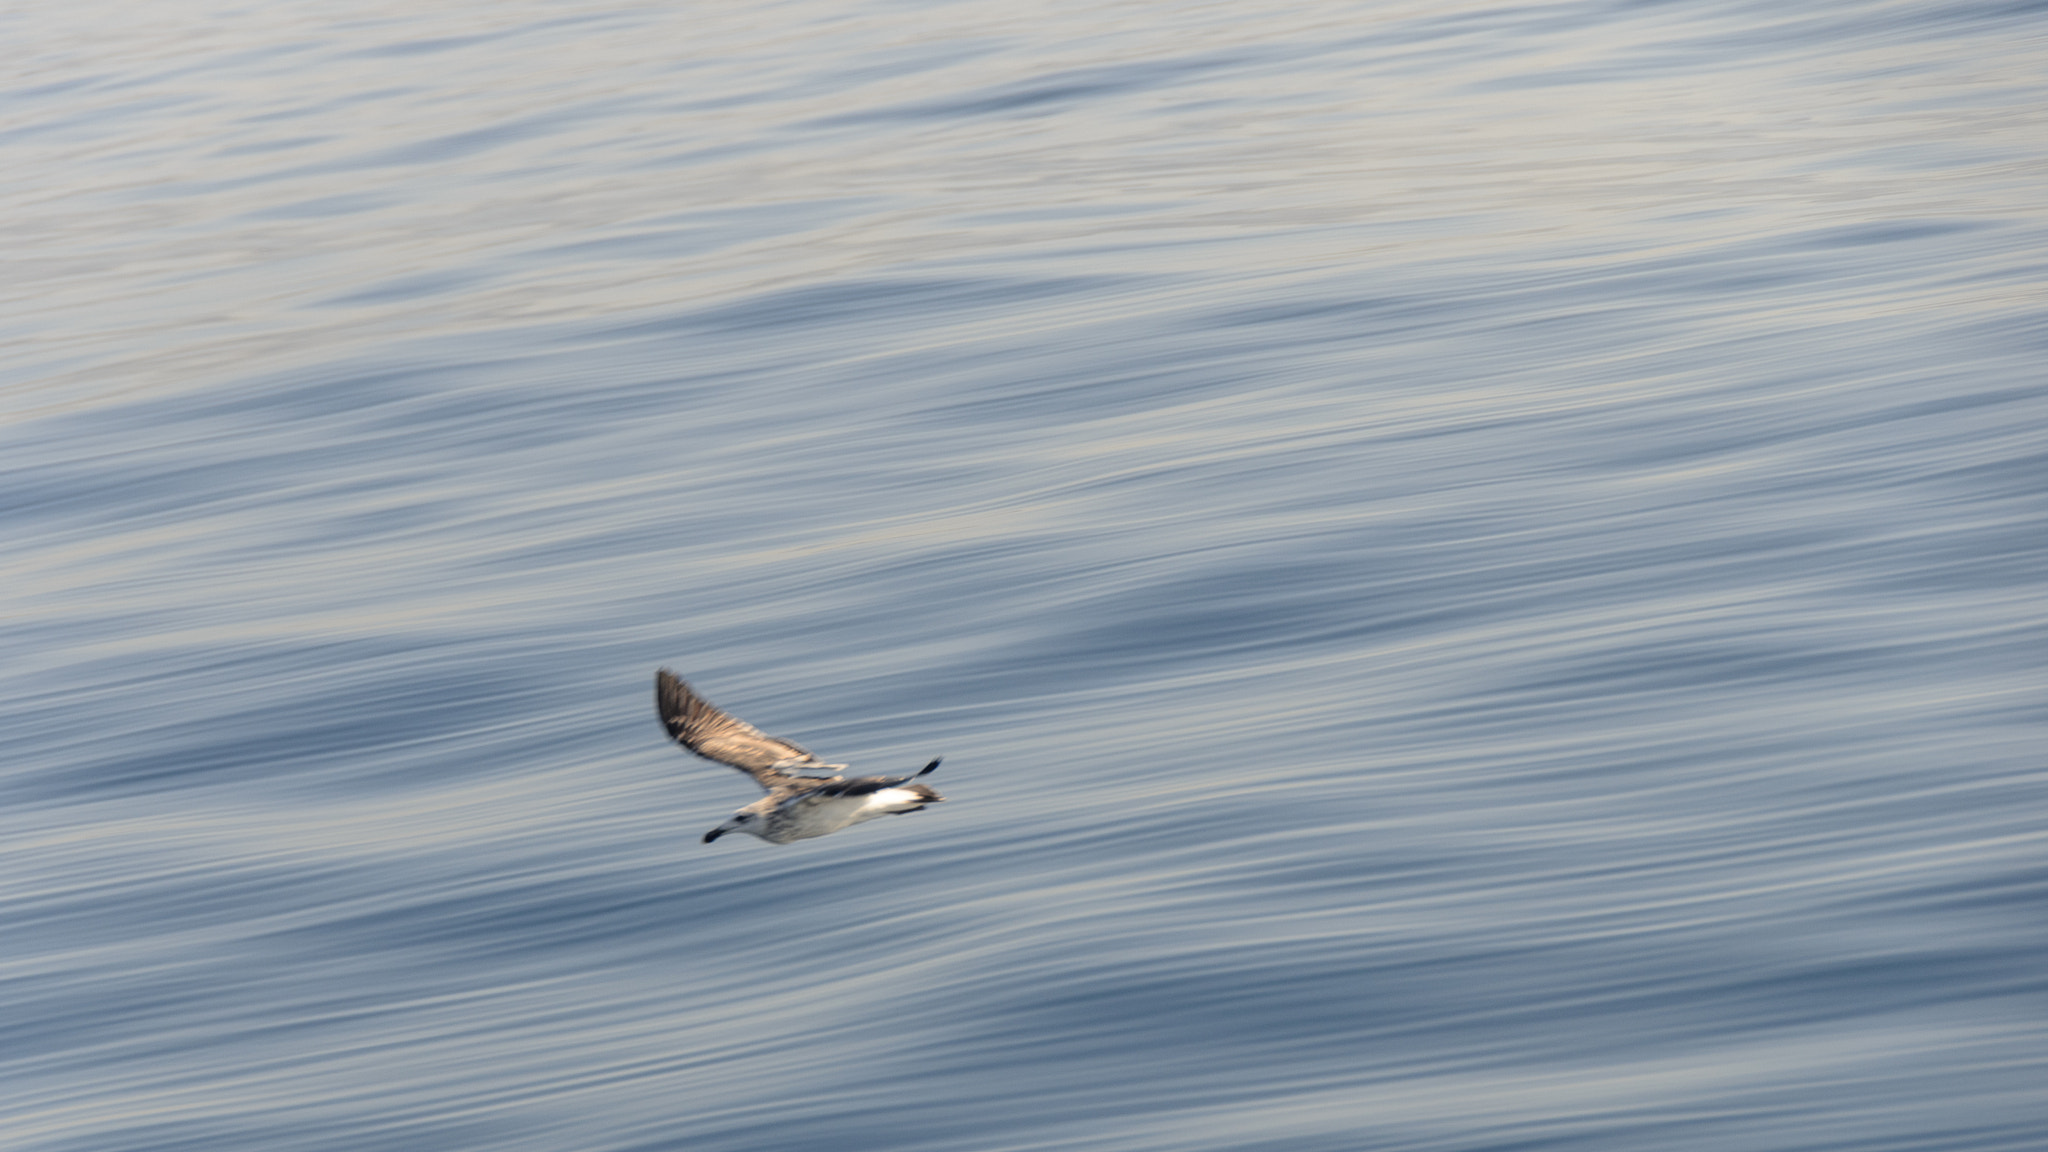 Photograph Seagull at full speed by Arend van der Walt on 500px